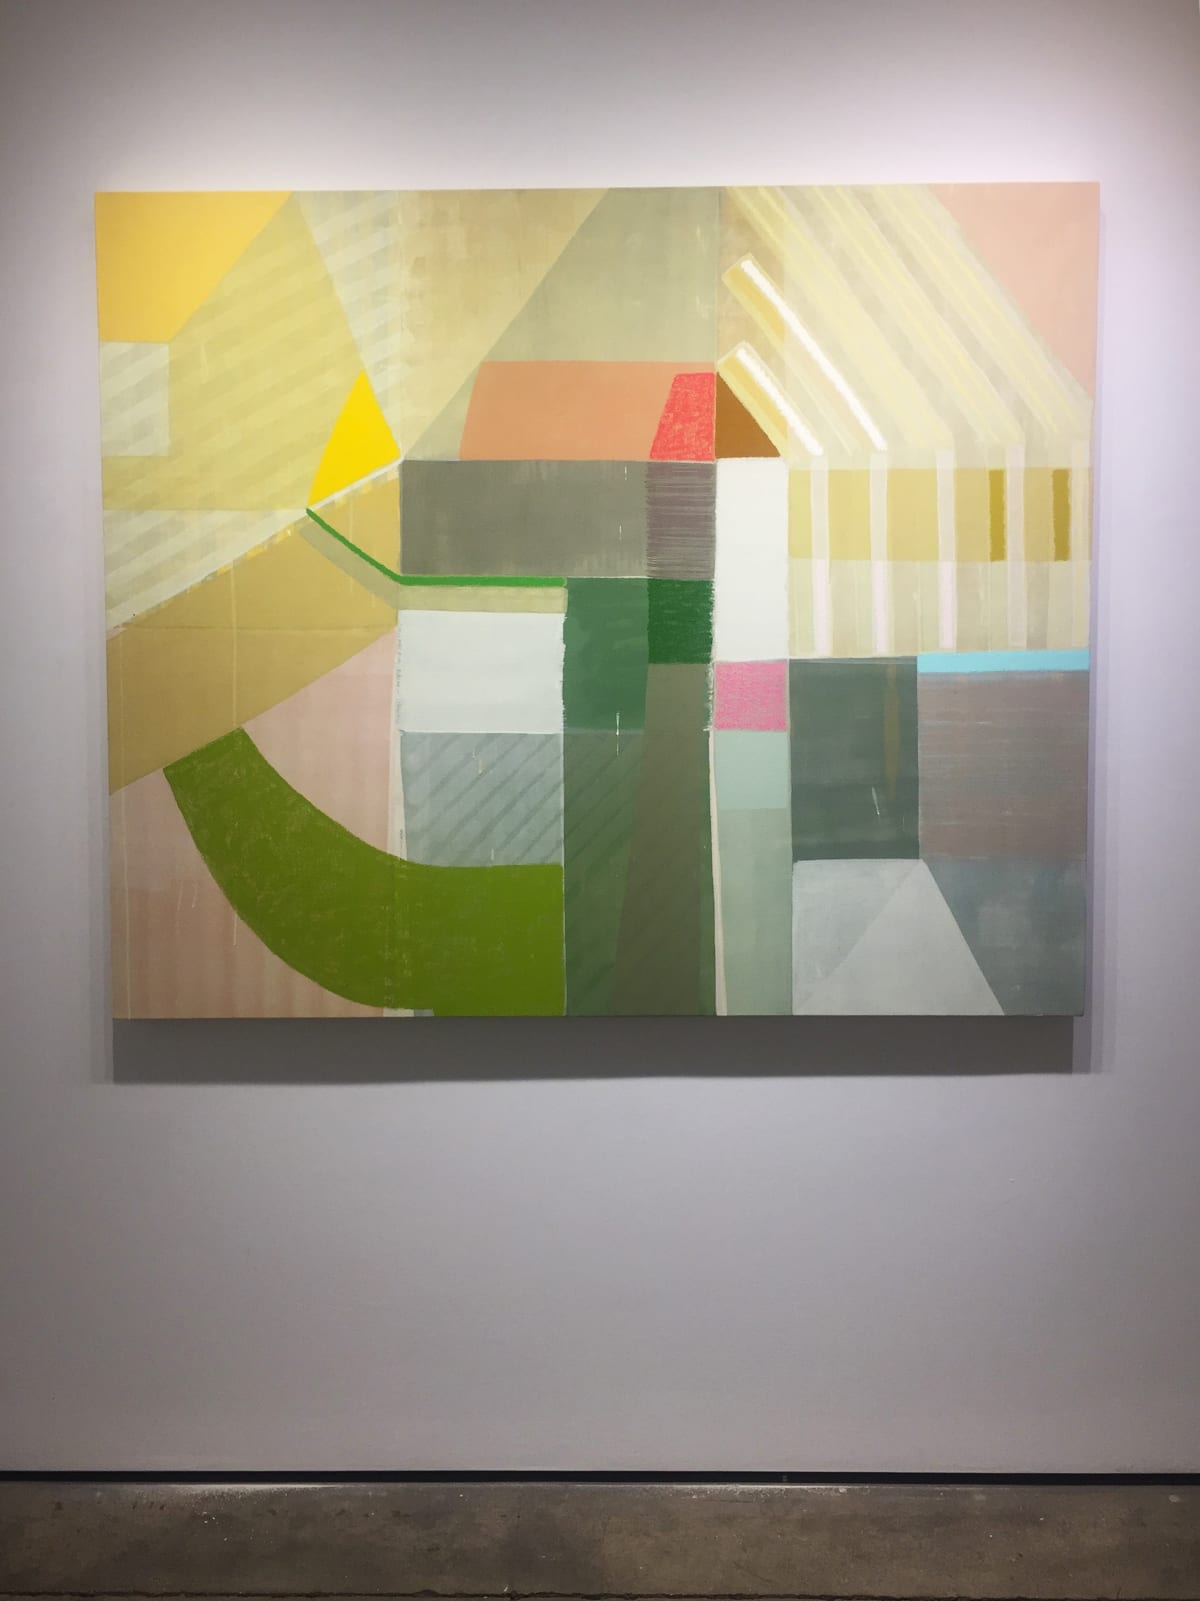 """Installation shot of Ky Anderson's """"Wind"""" painting on canvas. The painting was done in pigment, oil and acrylic paint in shades of green, yellow, tan, red, blue and pink."""